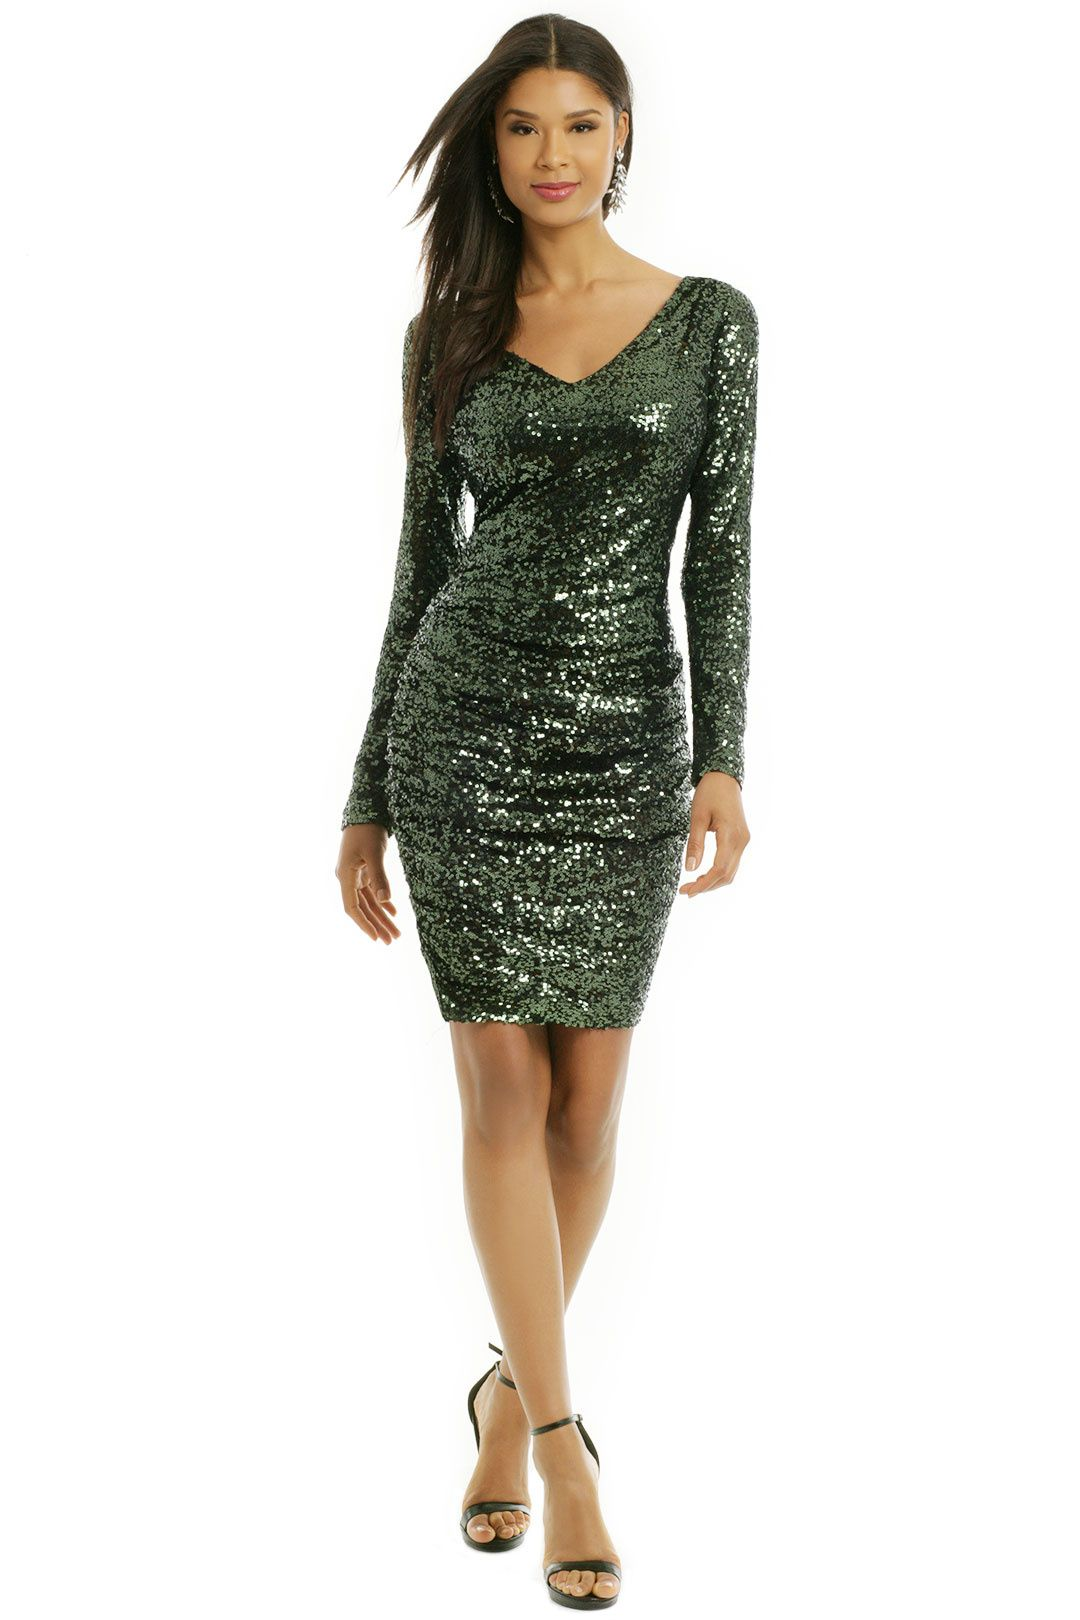 Sequin Shamrock Dress by Badgley Mischka for $65 - $75 | Rent The ...